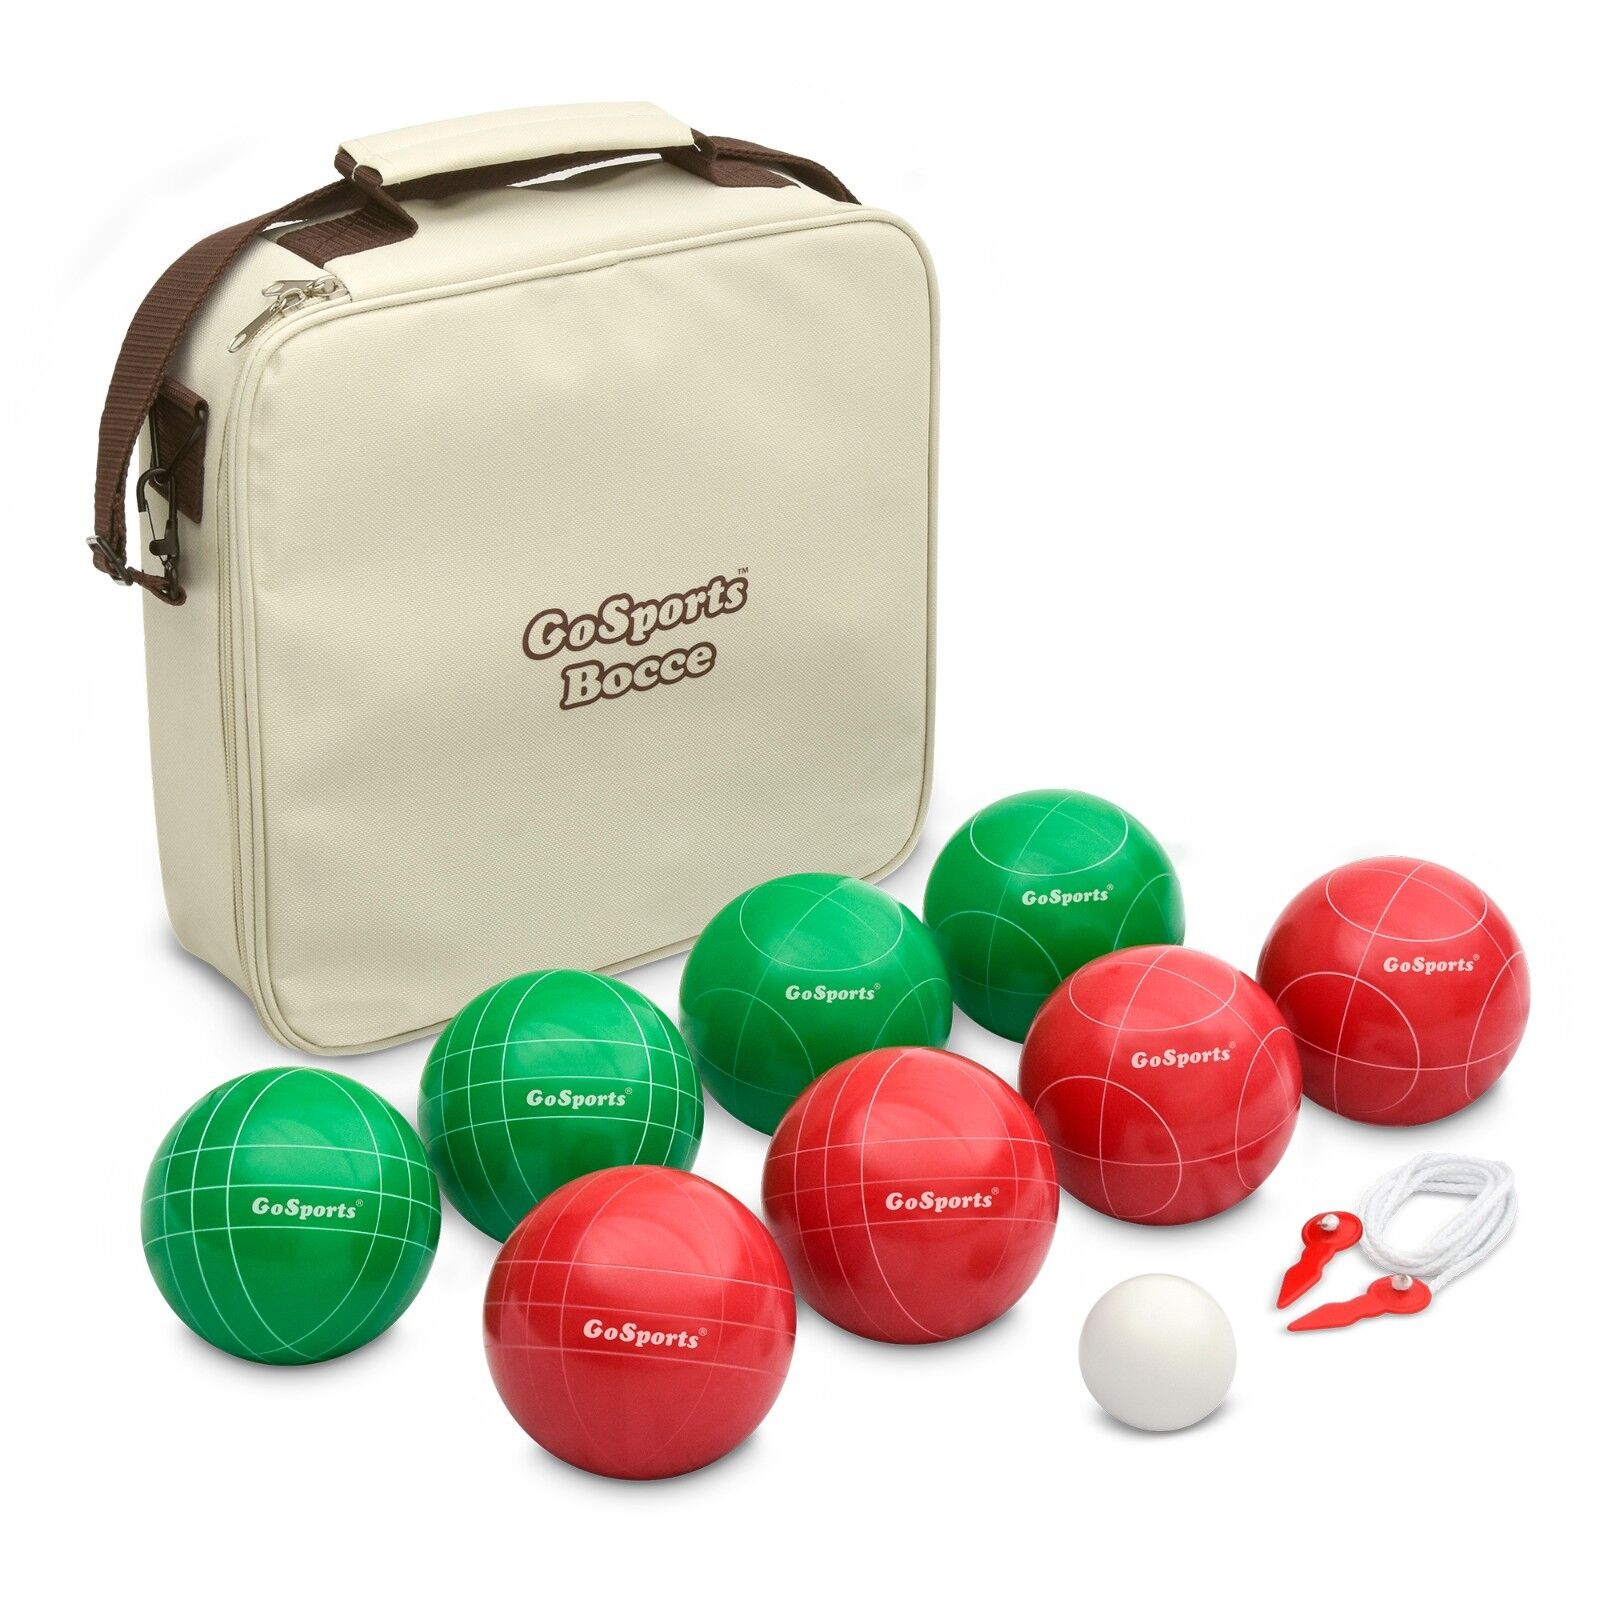 GoSports Premium 100mm Bocce Ball Set - 9 Piece with Carry Case - 4 Players